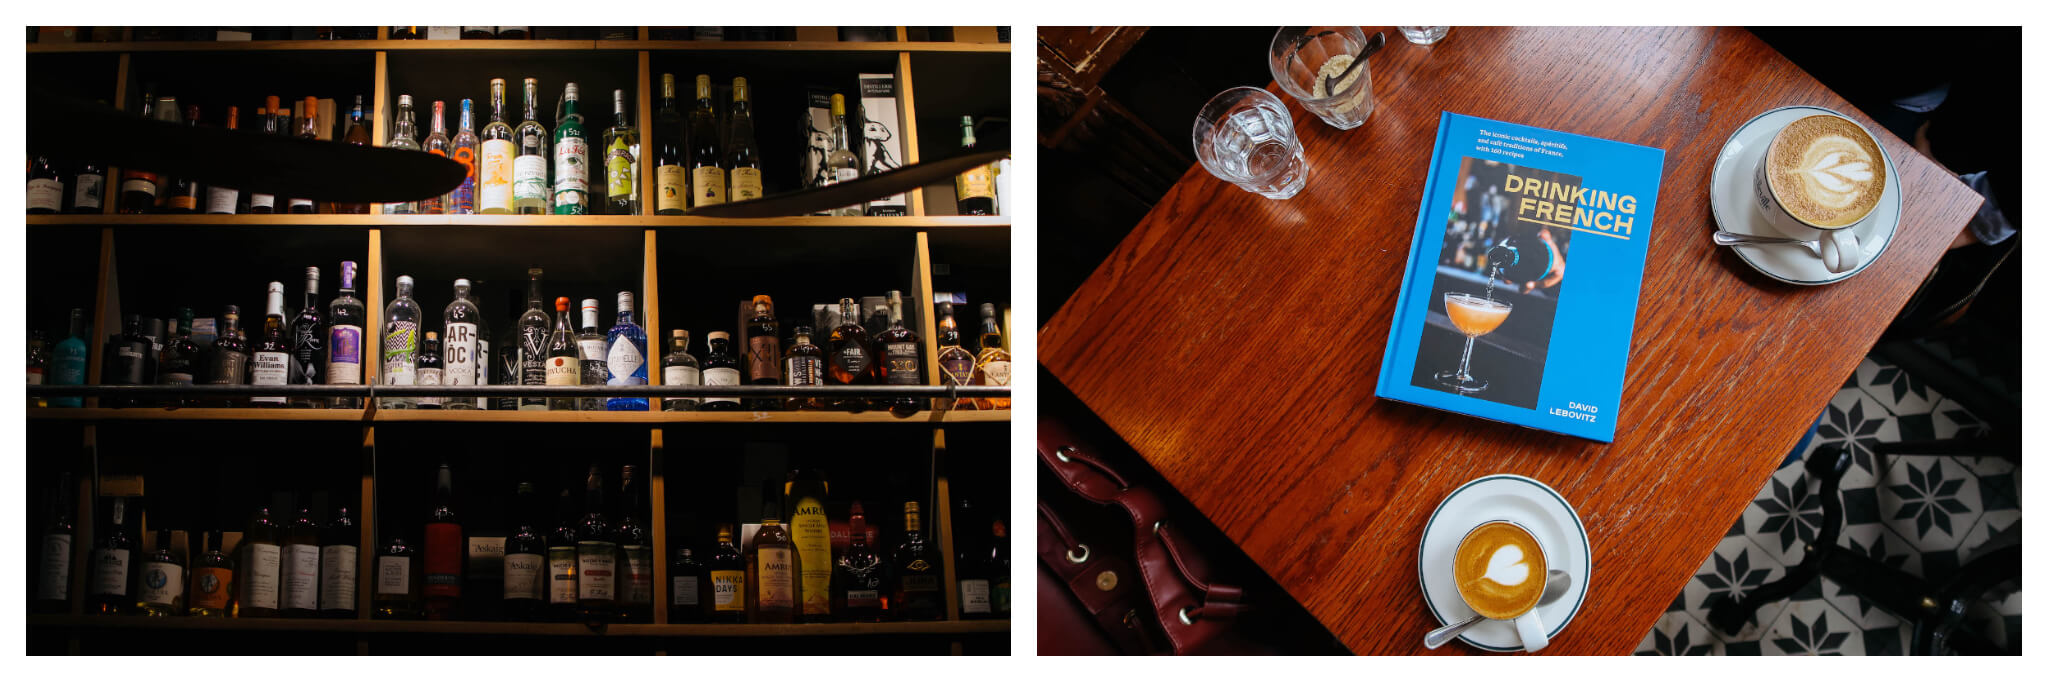 Left, shelves stacked with batch-made liquors and spirits in Paris. Right, David Lebovitz's new book 'Drinking French'.